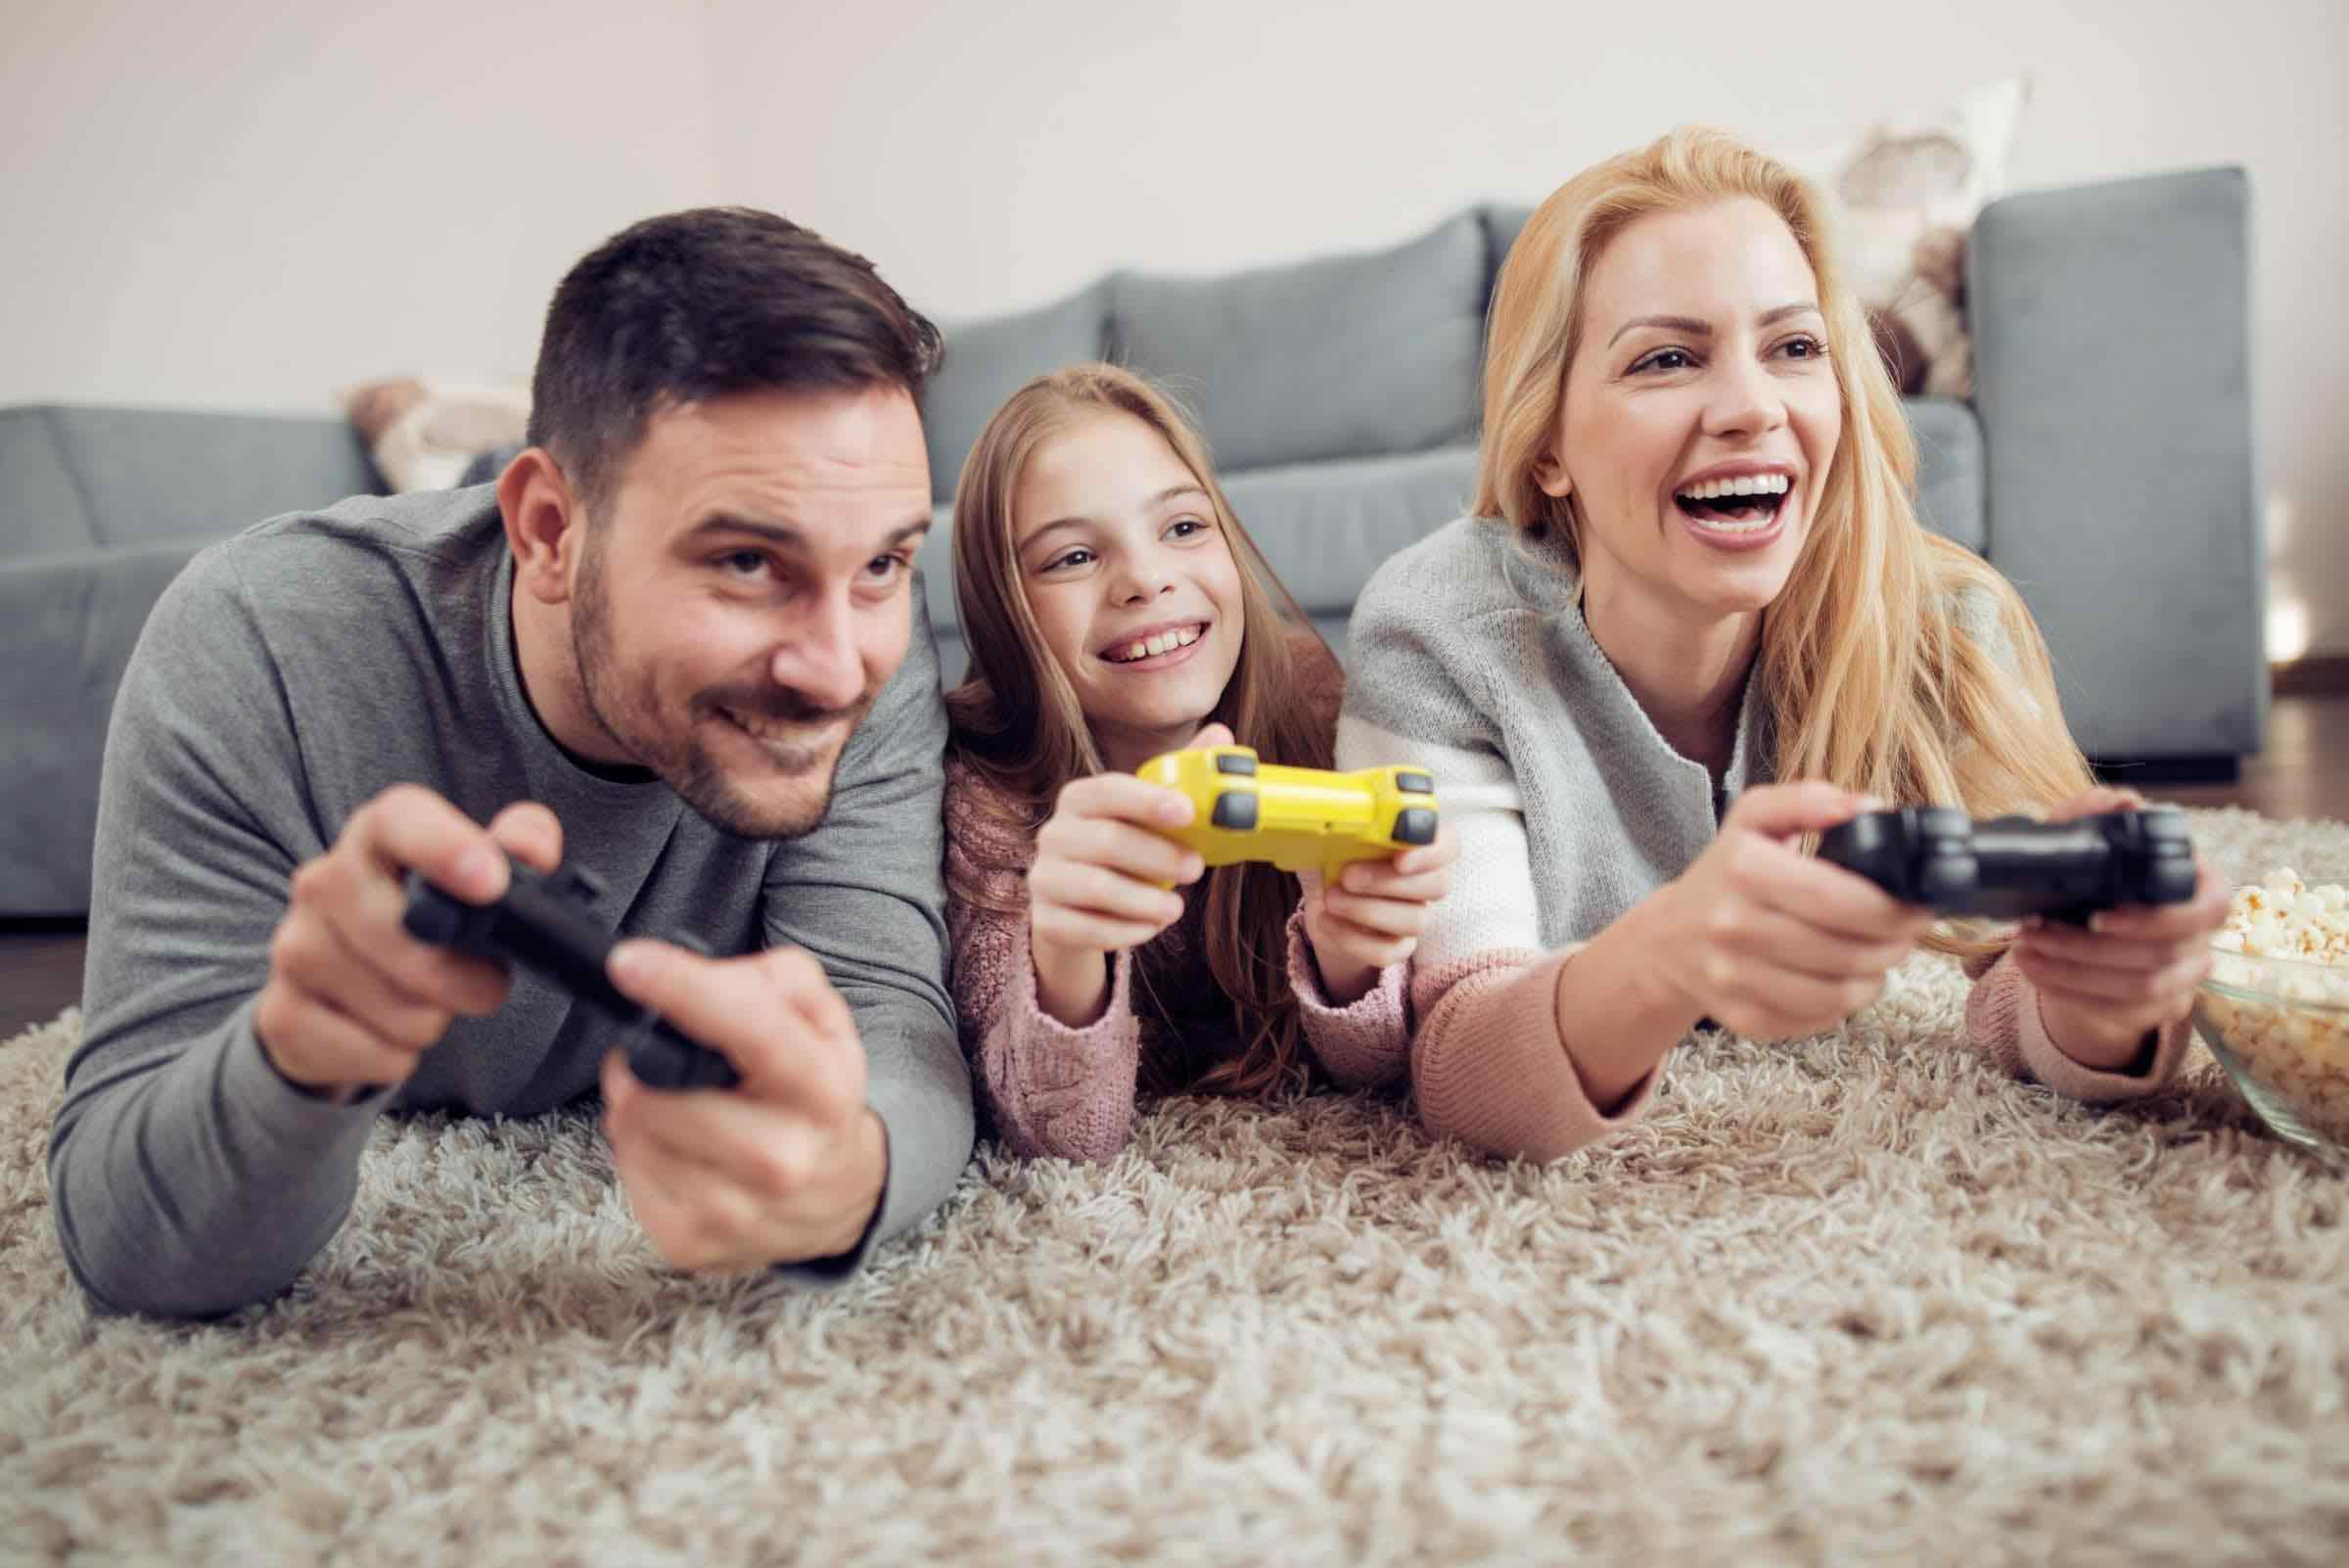 Free online games to play with your friends and family right now – Film Daily